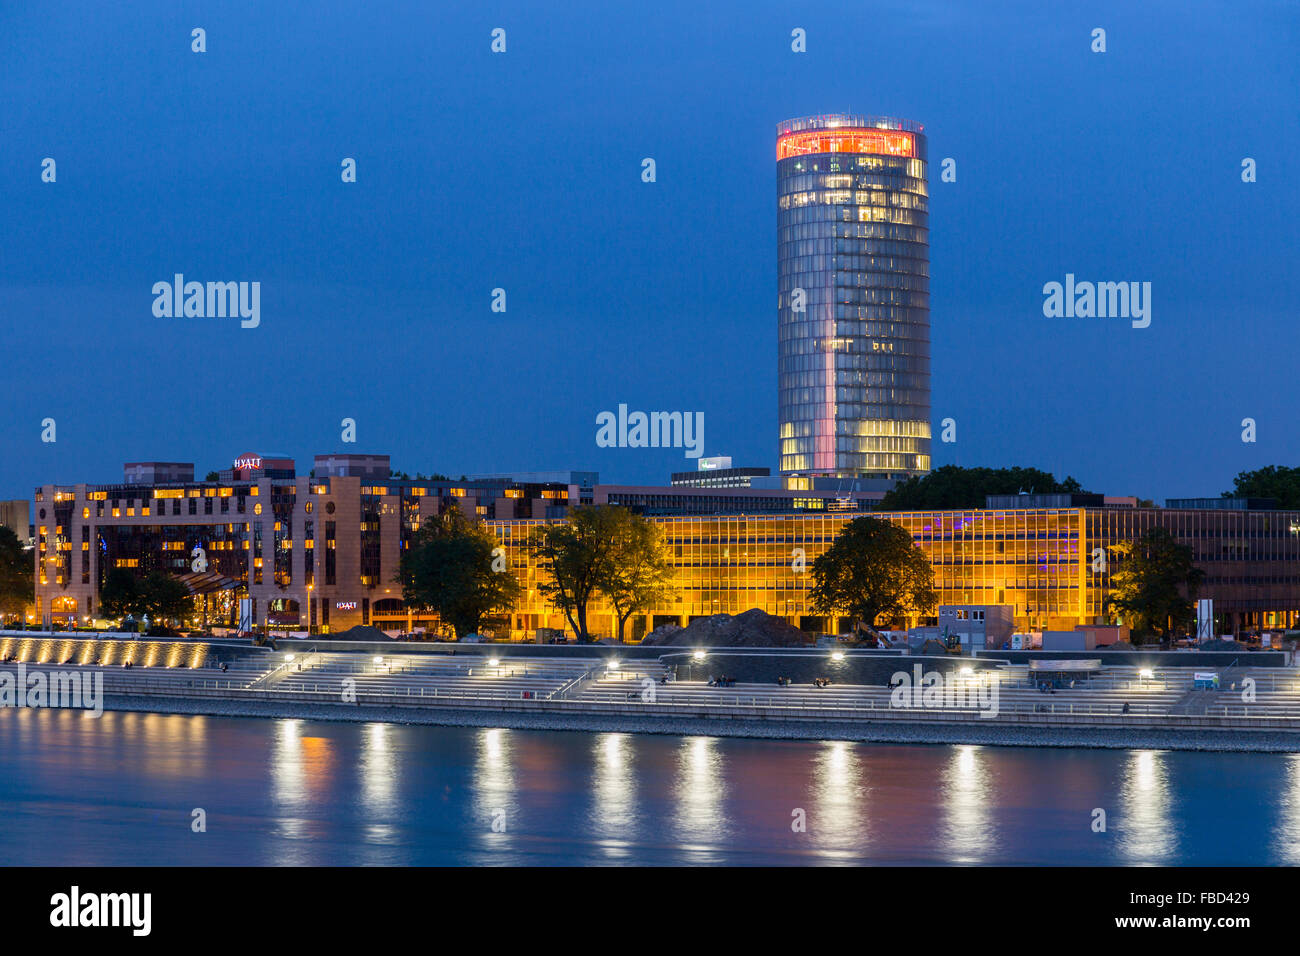 Rhine promenade, LVR tower,  Cologne, Germany - Stock Image